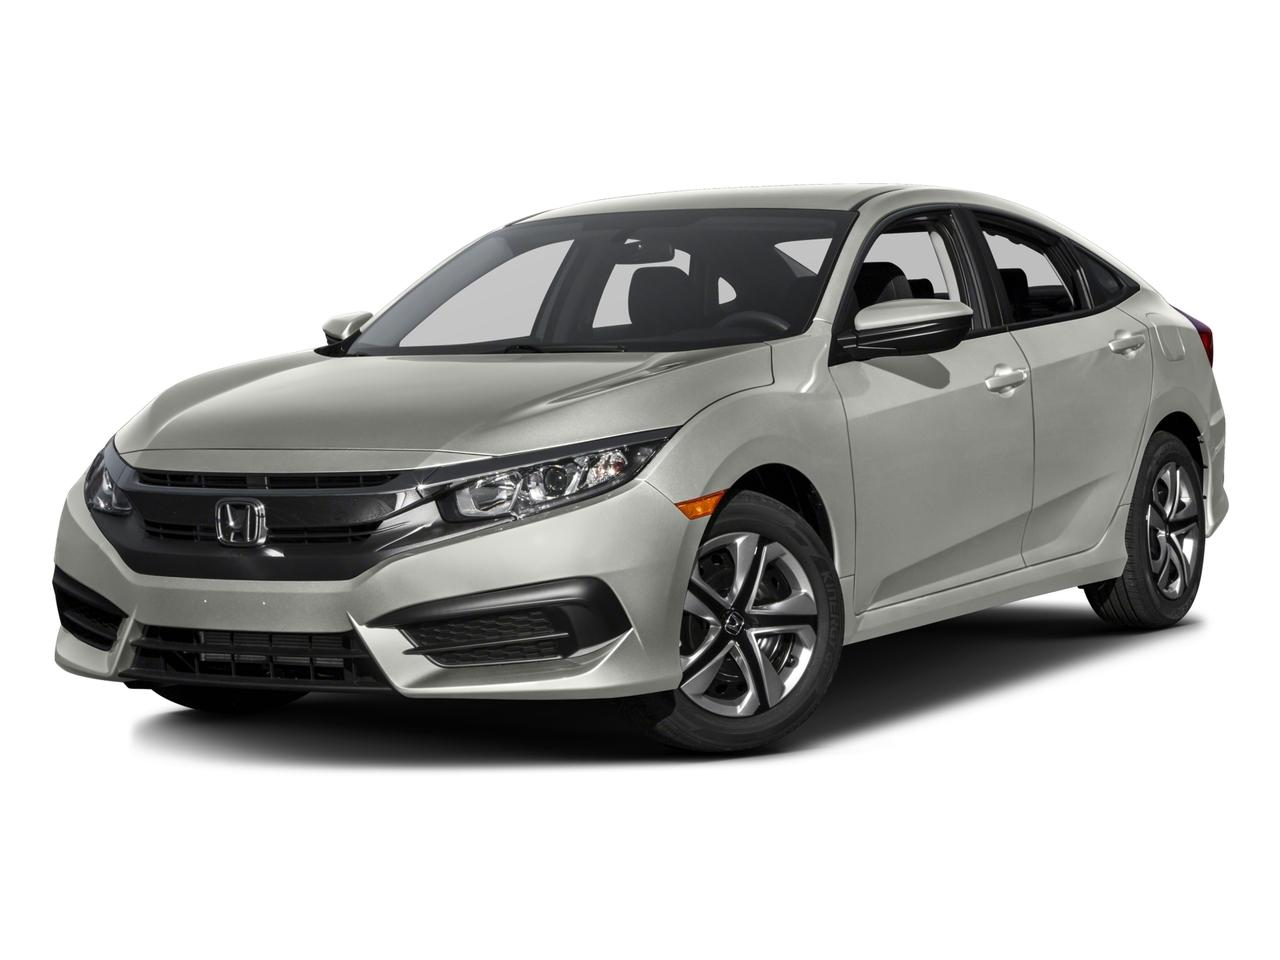 2016 Honda Civic Sedan Vehicle Photo in Rockville, MD 20852